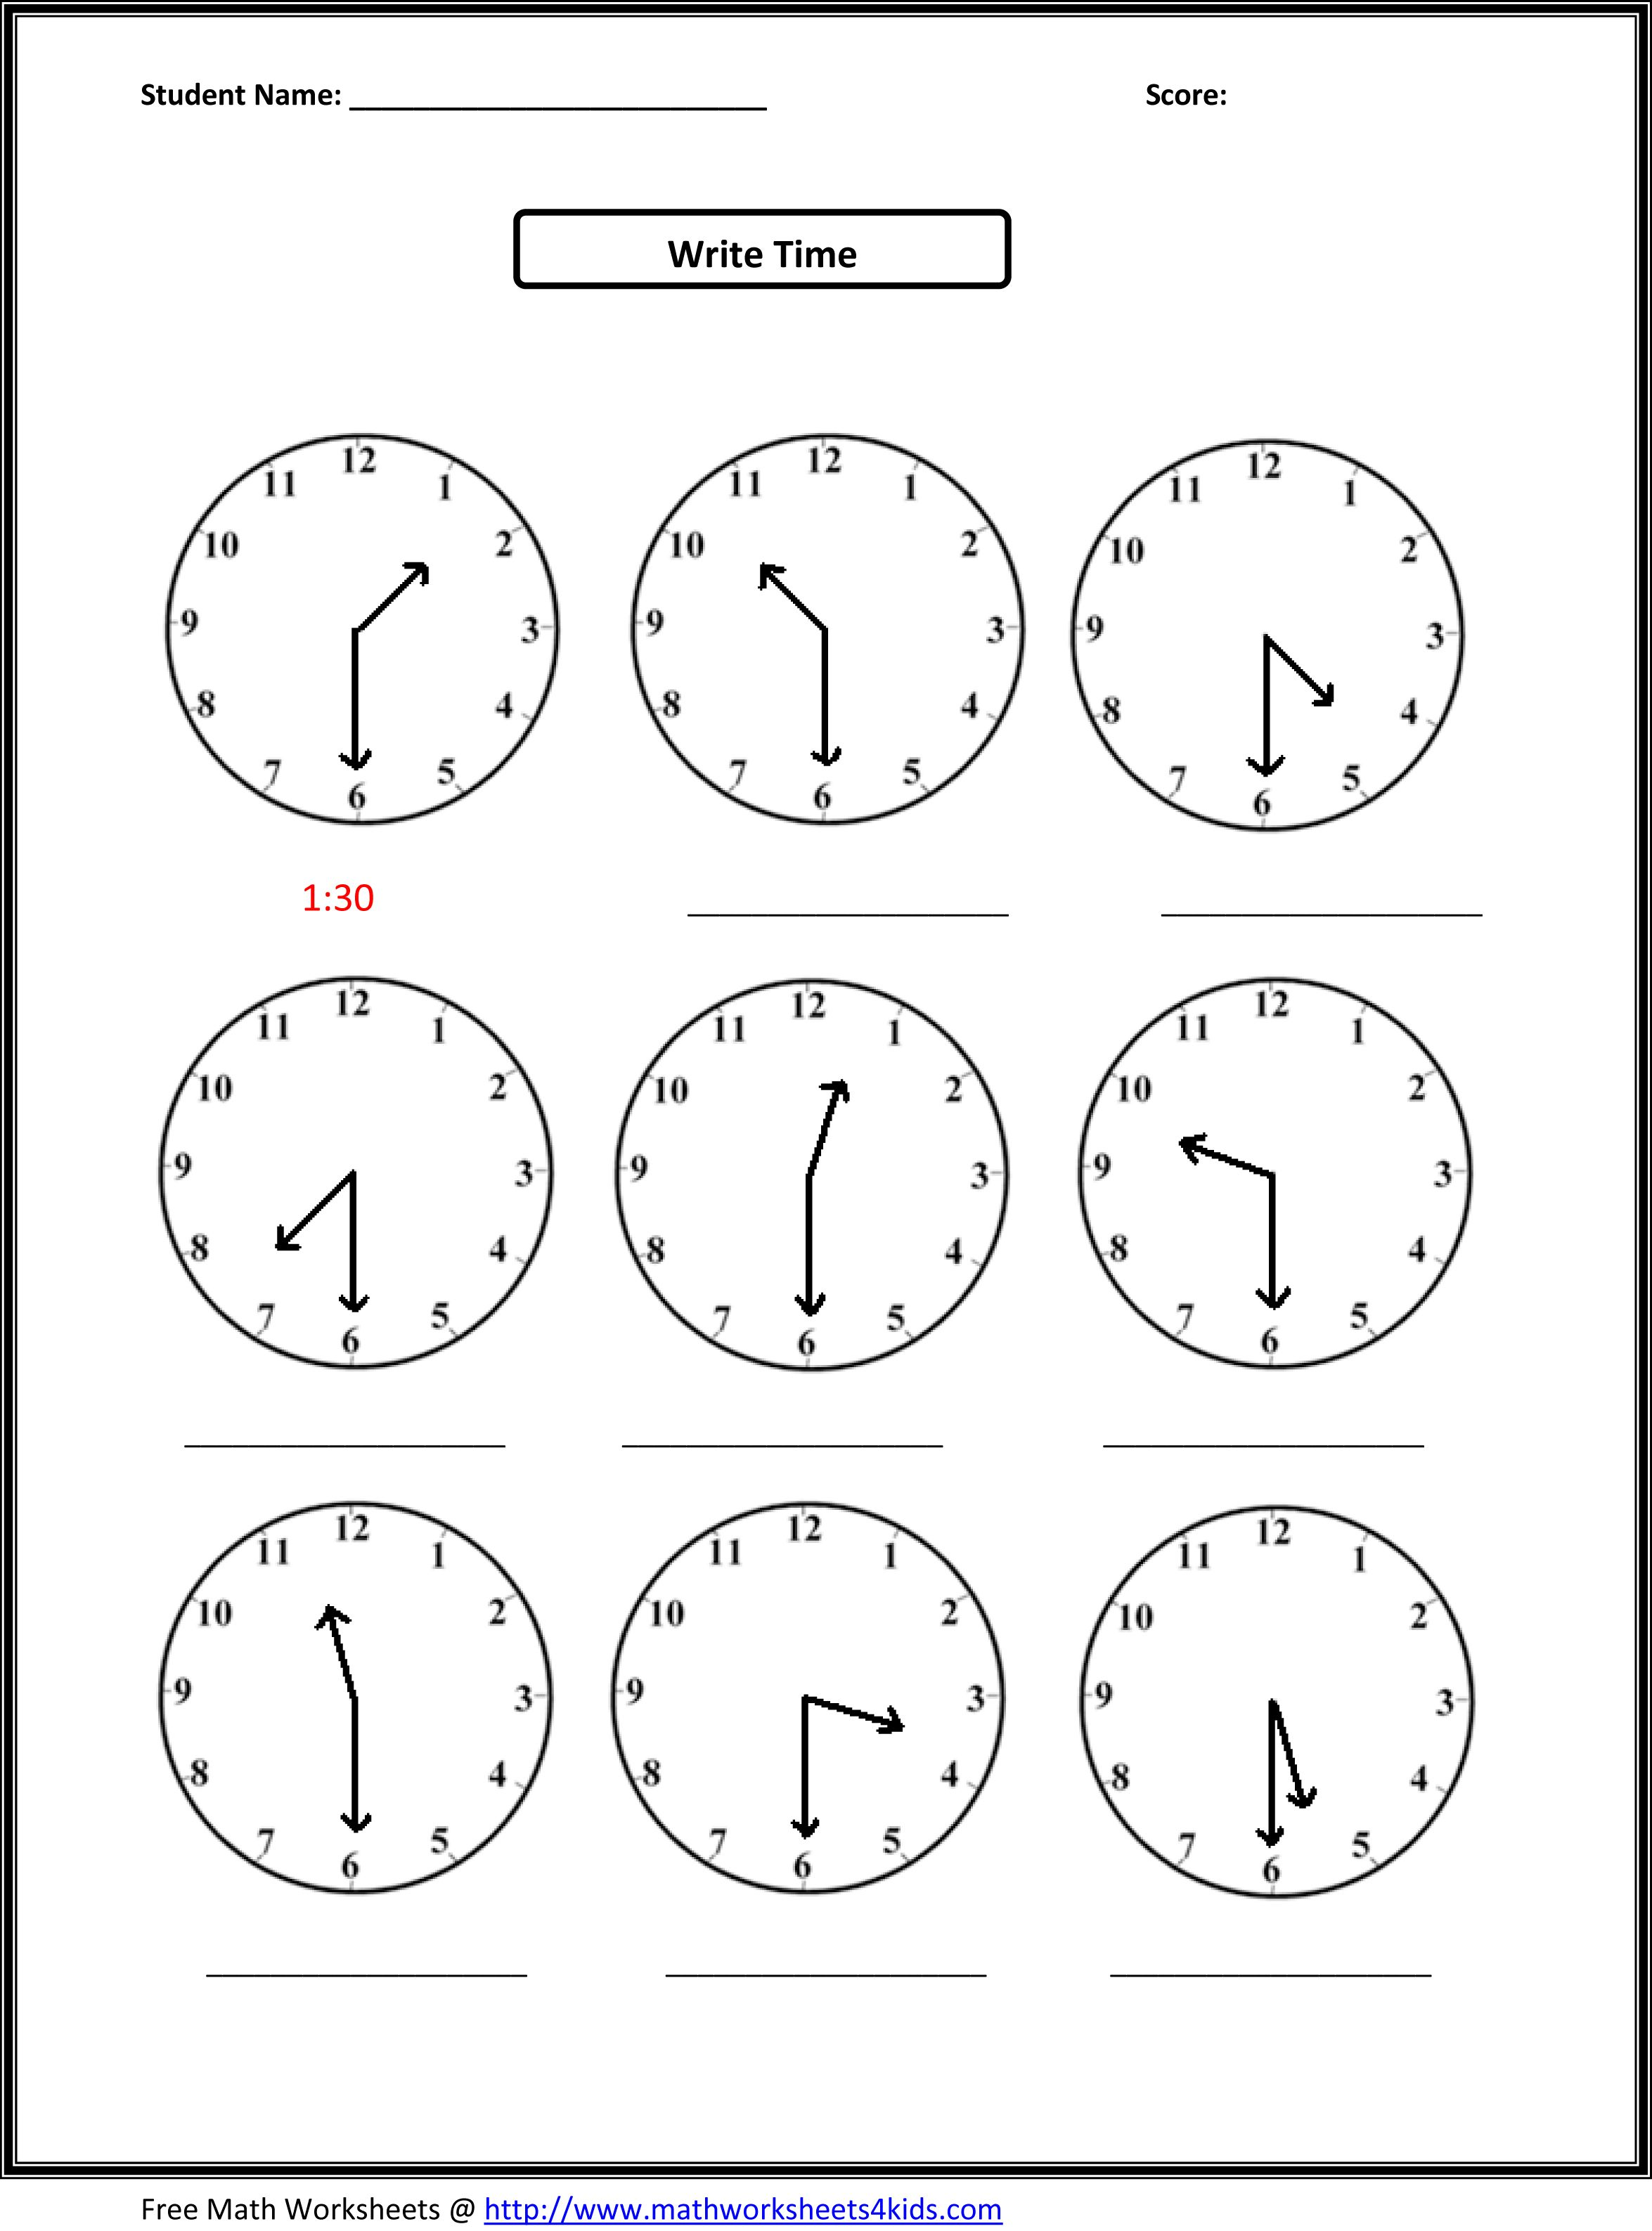 Weirdmailus  Marvelous Worksheet On Time For Grade   Reocurent With Handsome Free Printable Telling Time Worksheets Nd Grade  Reocurent With Alluring Scale Drawing Worksheet Th Grade Also Translation Worksheet In Addition Th Grade Science Worksheets And Science Worksheets For Kids As Well As Trust Worksheets Additionally Cell Energy Worksheet From Reocurentcom With Weirdmailus  Handsome Worksheet On Time For Grade   Reocurent With Alluring Free Printable Telling Time Worksheets Nd Grade  Reocurent And Marvelous Scale Drawing Worksheet Th Grade Also Translation Worksheet In Addition Th Grade Science Worksheets From Reocurentcom